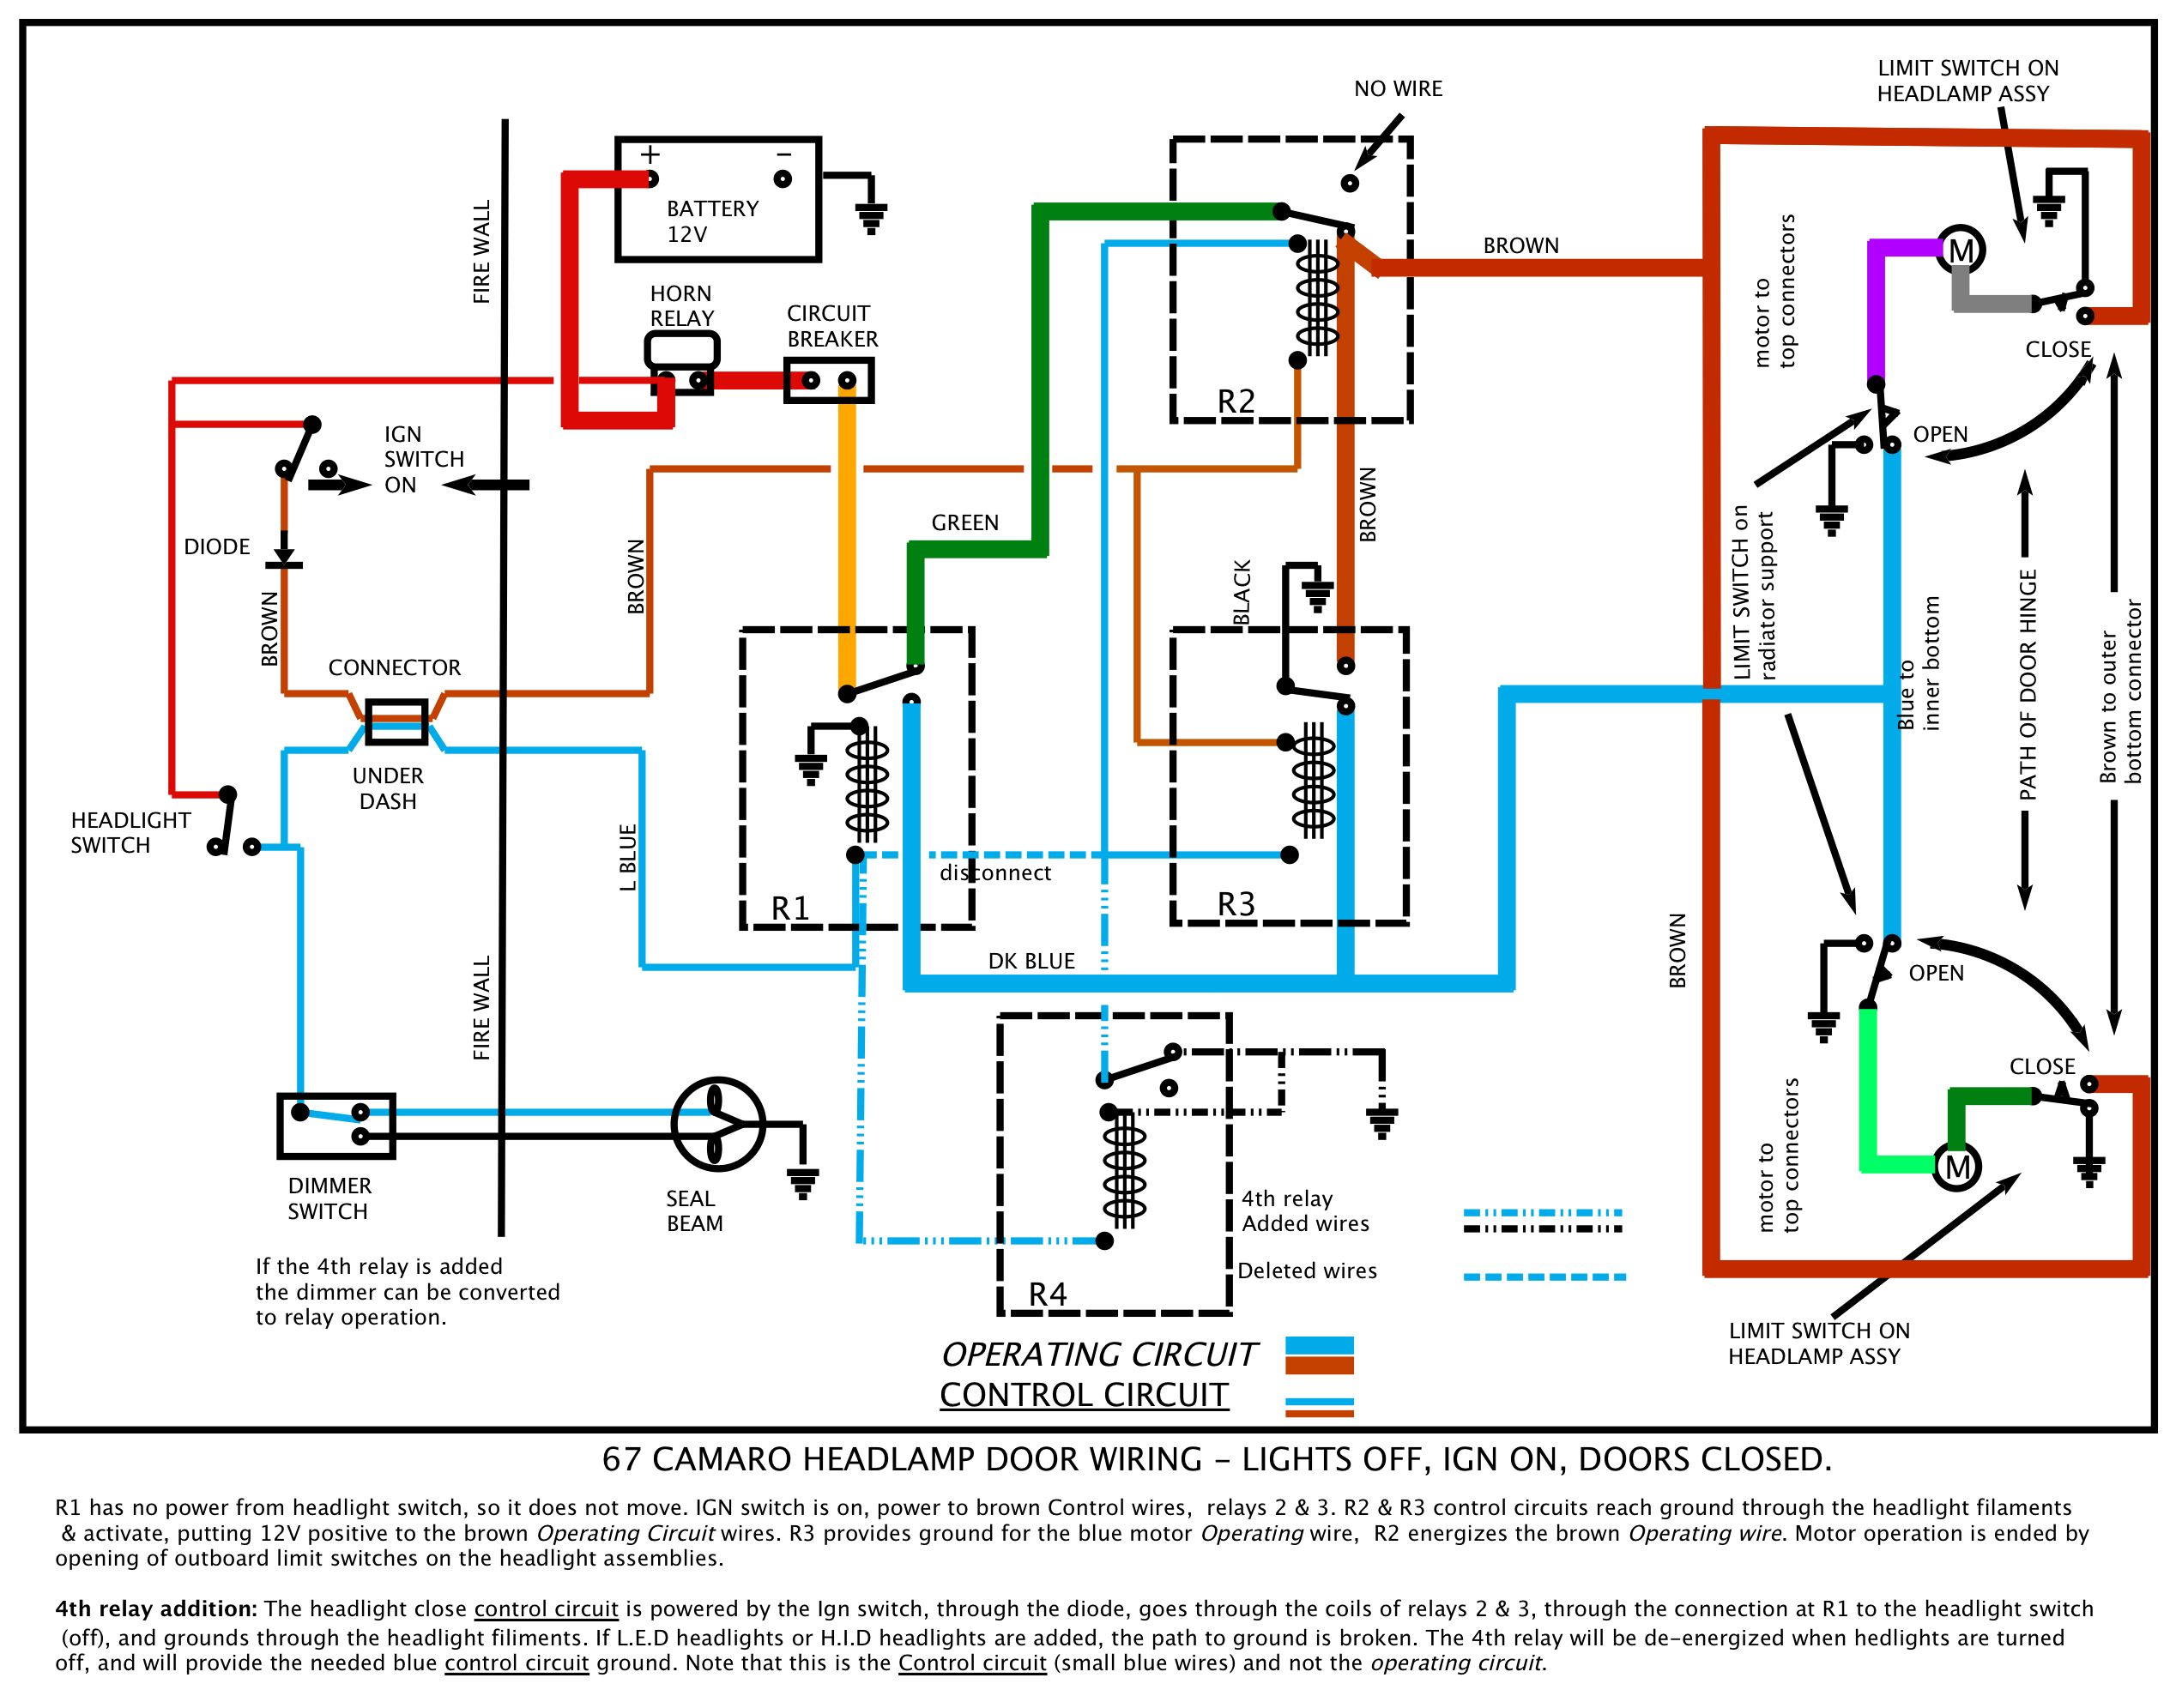 67_RS_Ign_on_4th_relay 67 rs headlight doors 1967 camaro wiring diagram pdf at nearapp.co